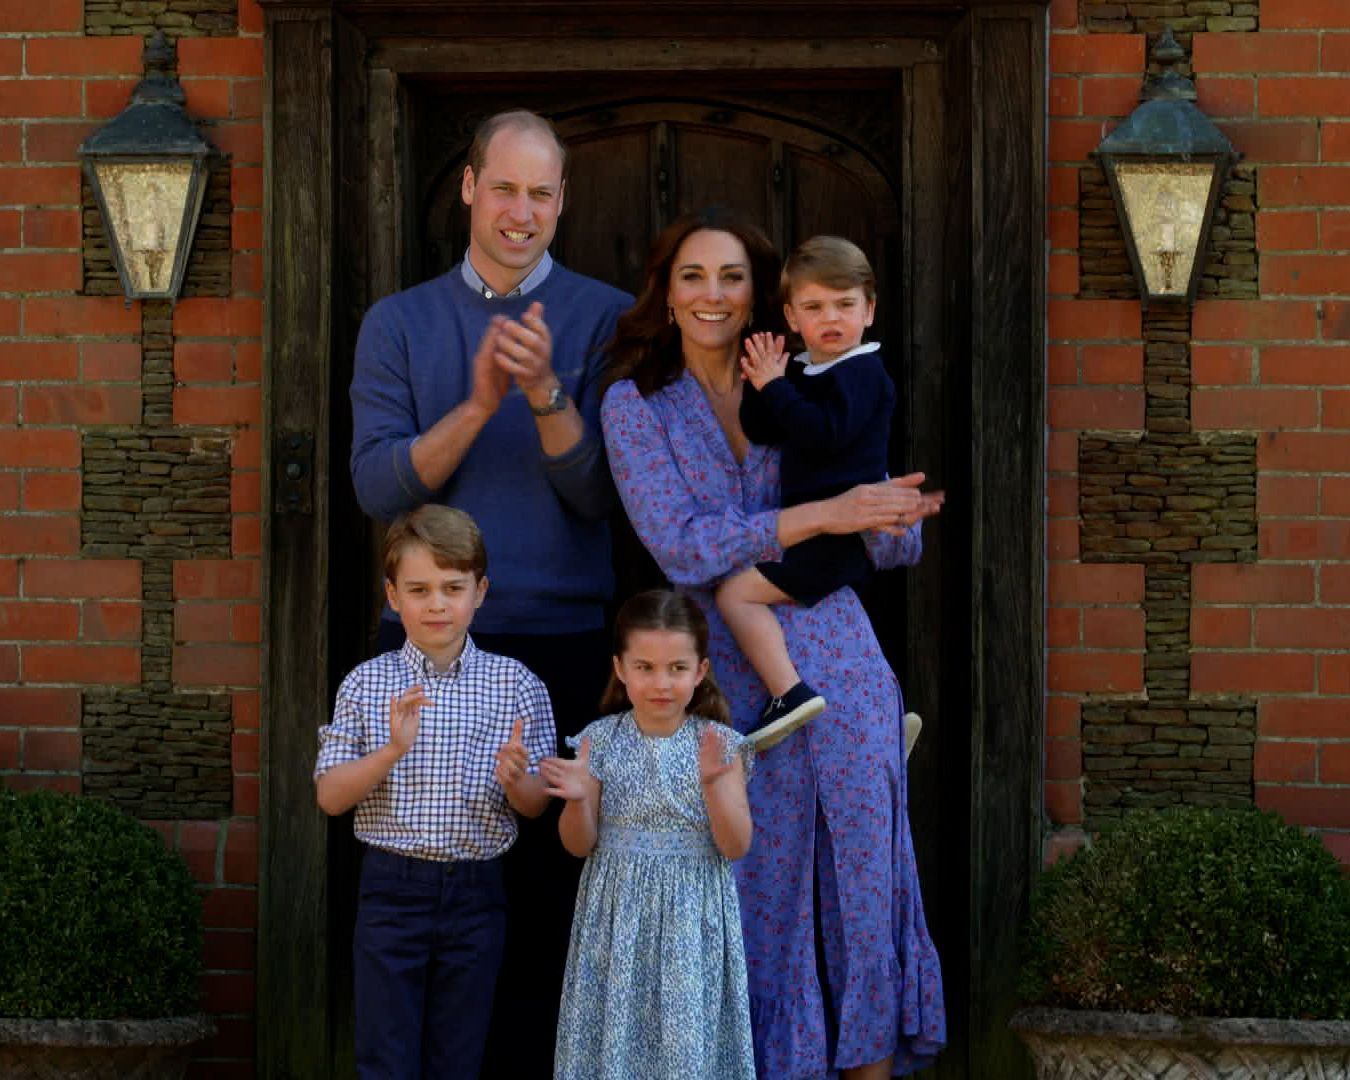 Prince William and Kate Middleton Have a Strict Family Rule Against Going to Bed Angry